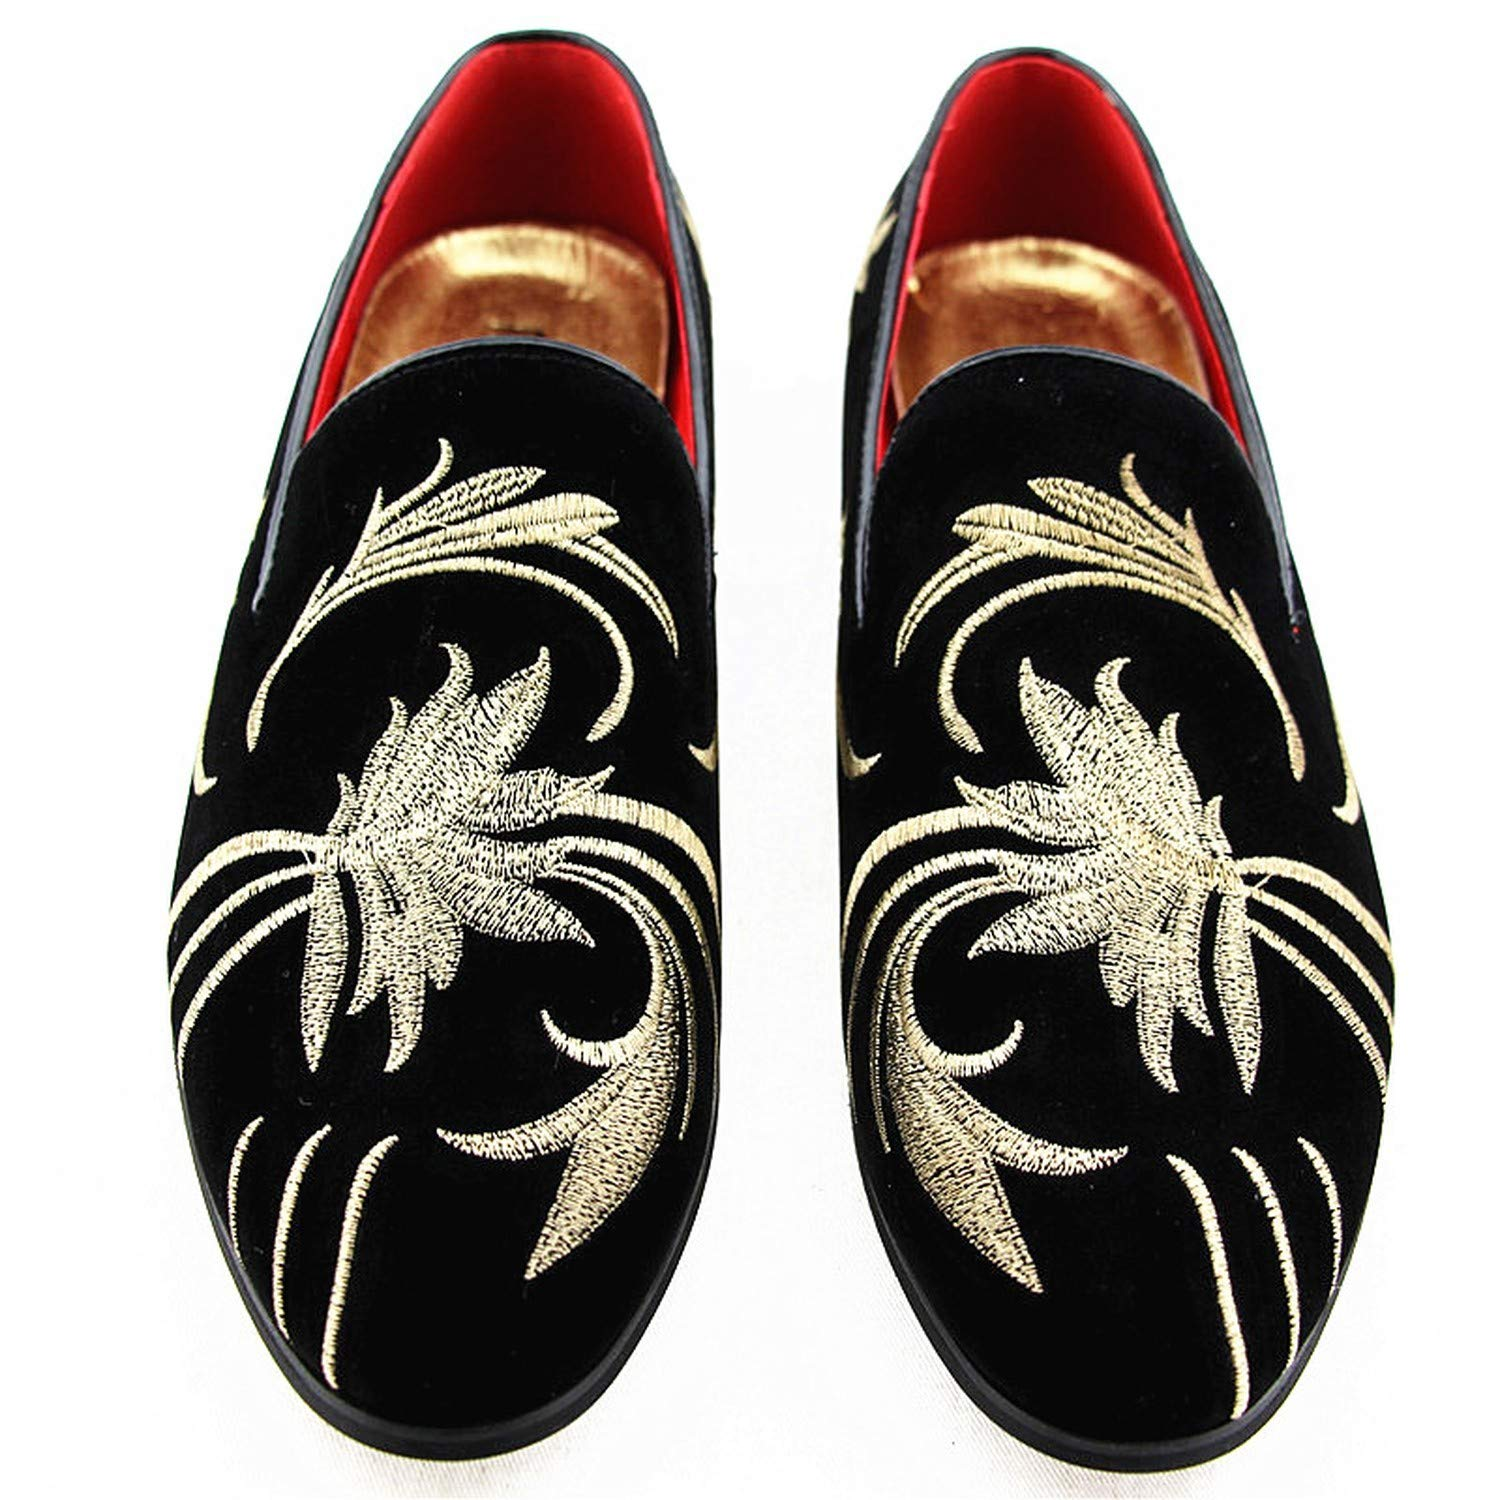 FJ-Direct Mens Fashion Suede Leather Embroidery Loafers Mens Casual Printed Moccasins Shoes Man Party Driving Flats Sizes 38-47,Model 1,10